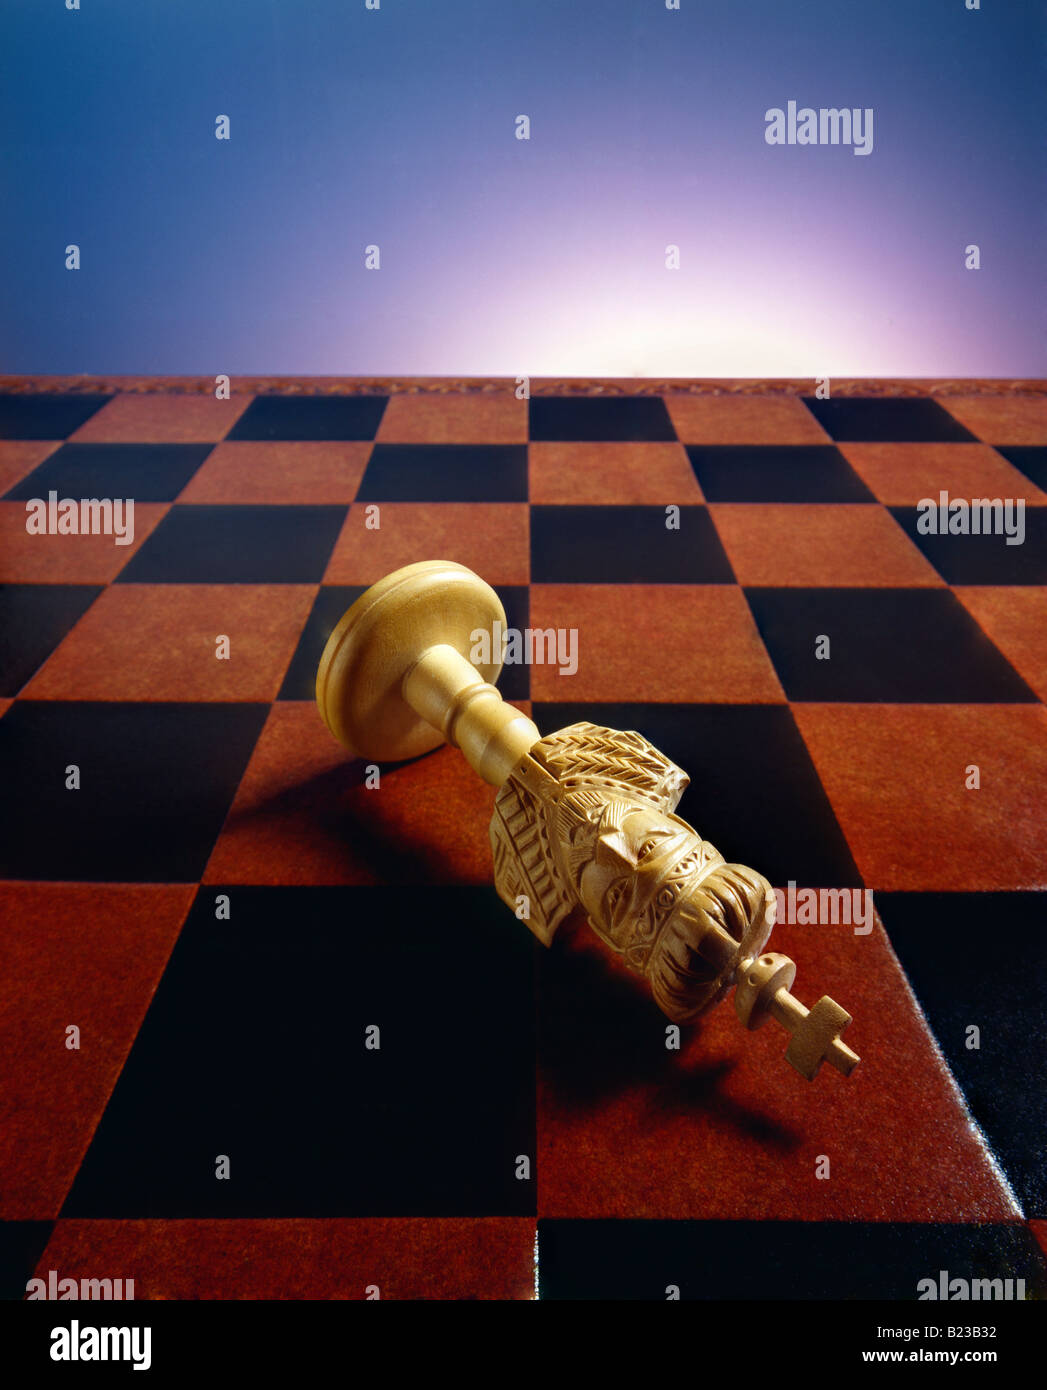 checkmate of fallen king on chessboard - Stock Image